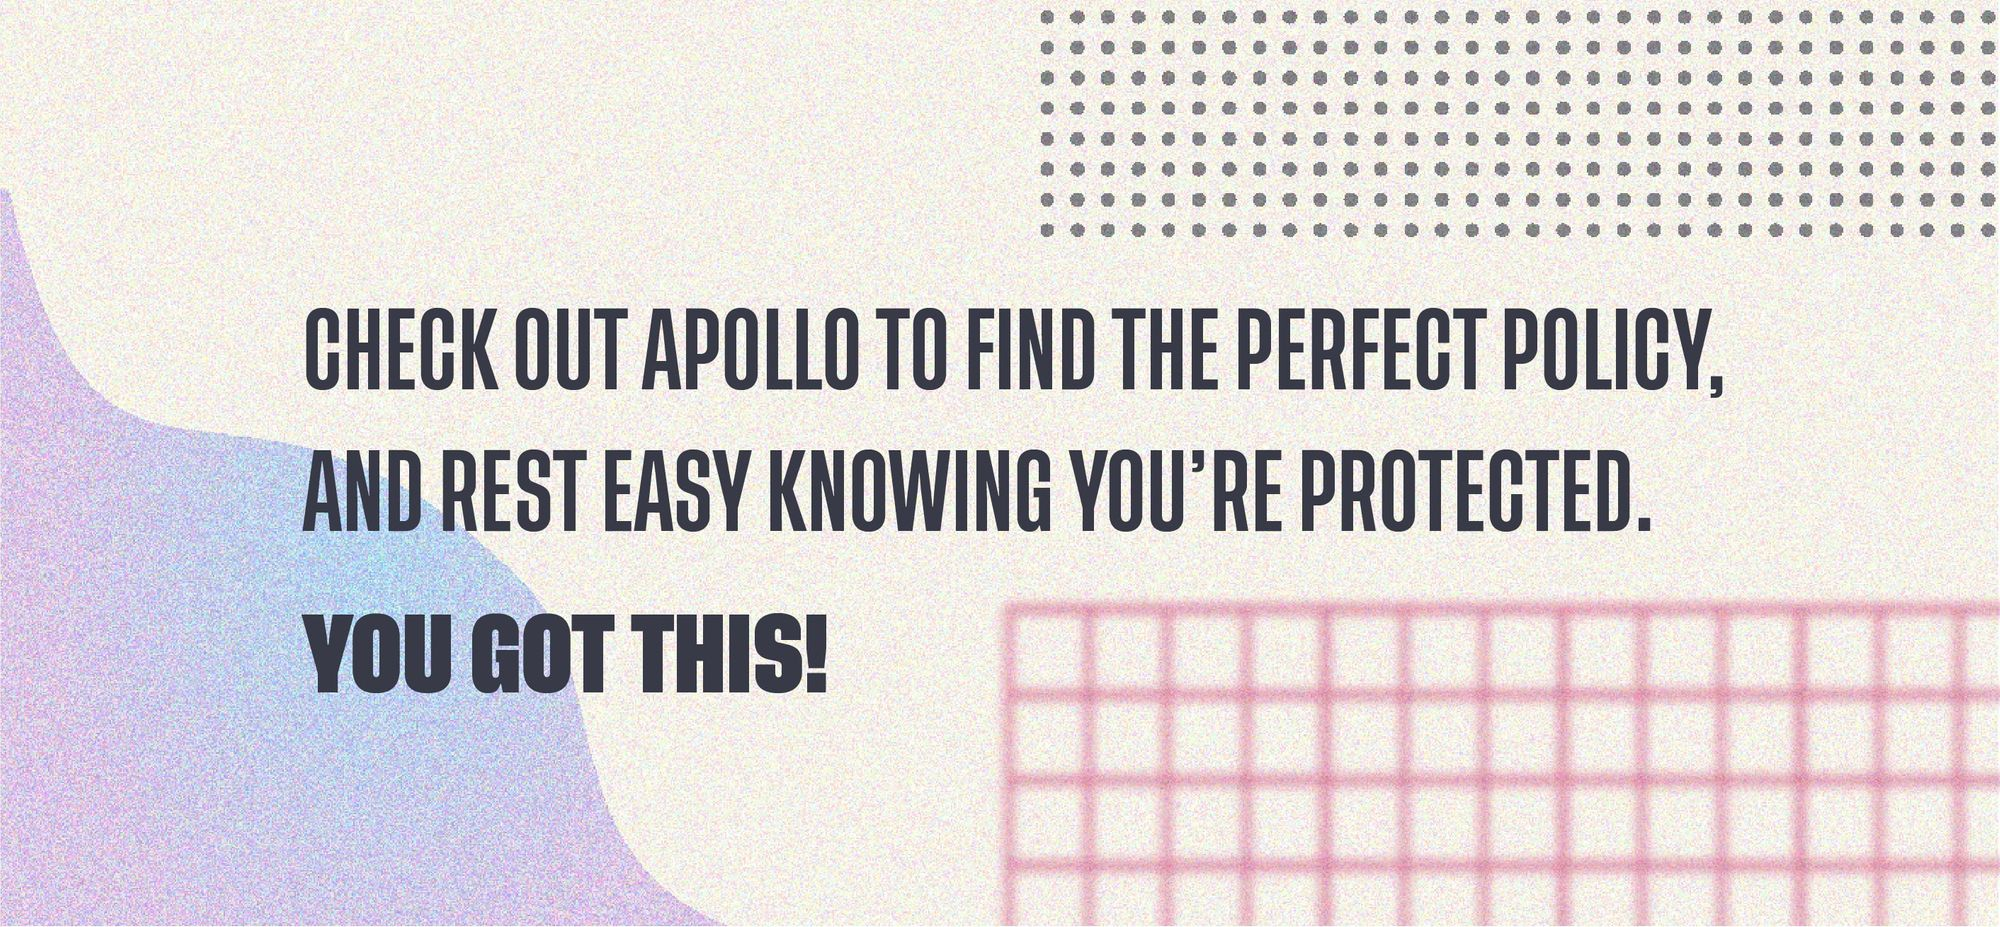 Check out Apollo to find the perfect policy, and rest easy knowing you're protected. You got this!